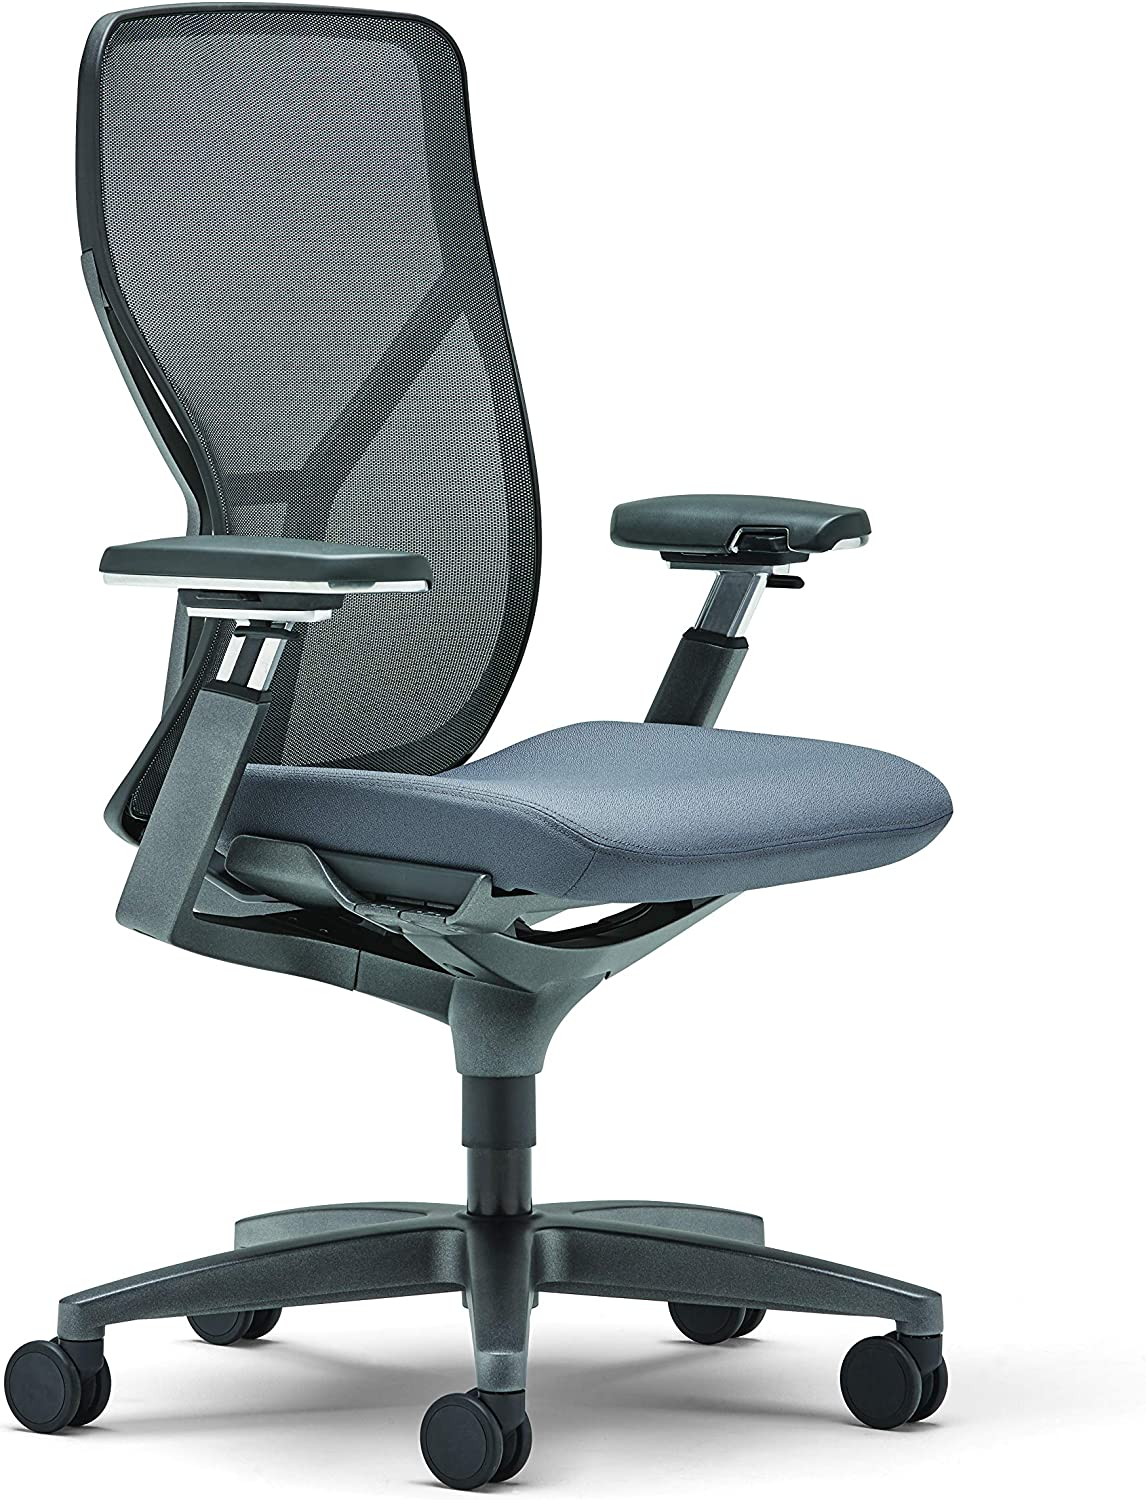 Allsteel Black Acuity 24x60 Weight-Activated Mesh Back Task Chair with Fully Adjustable Arms